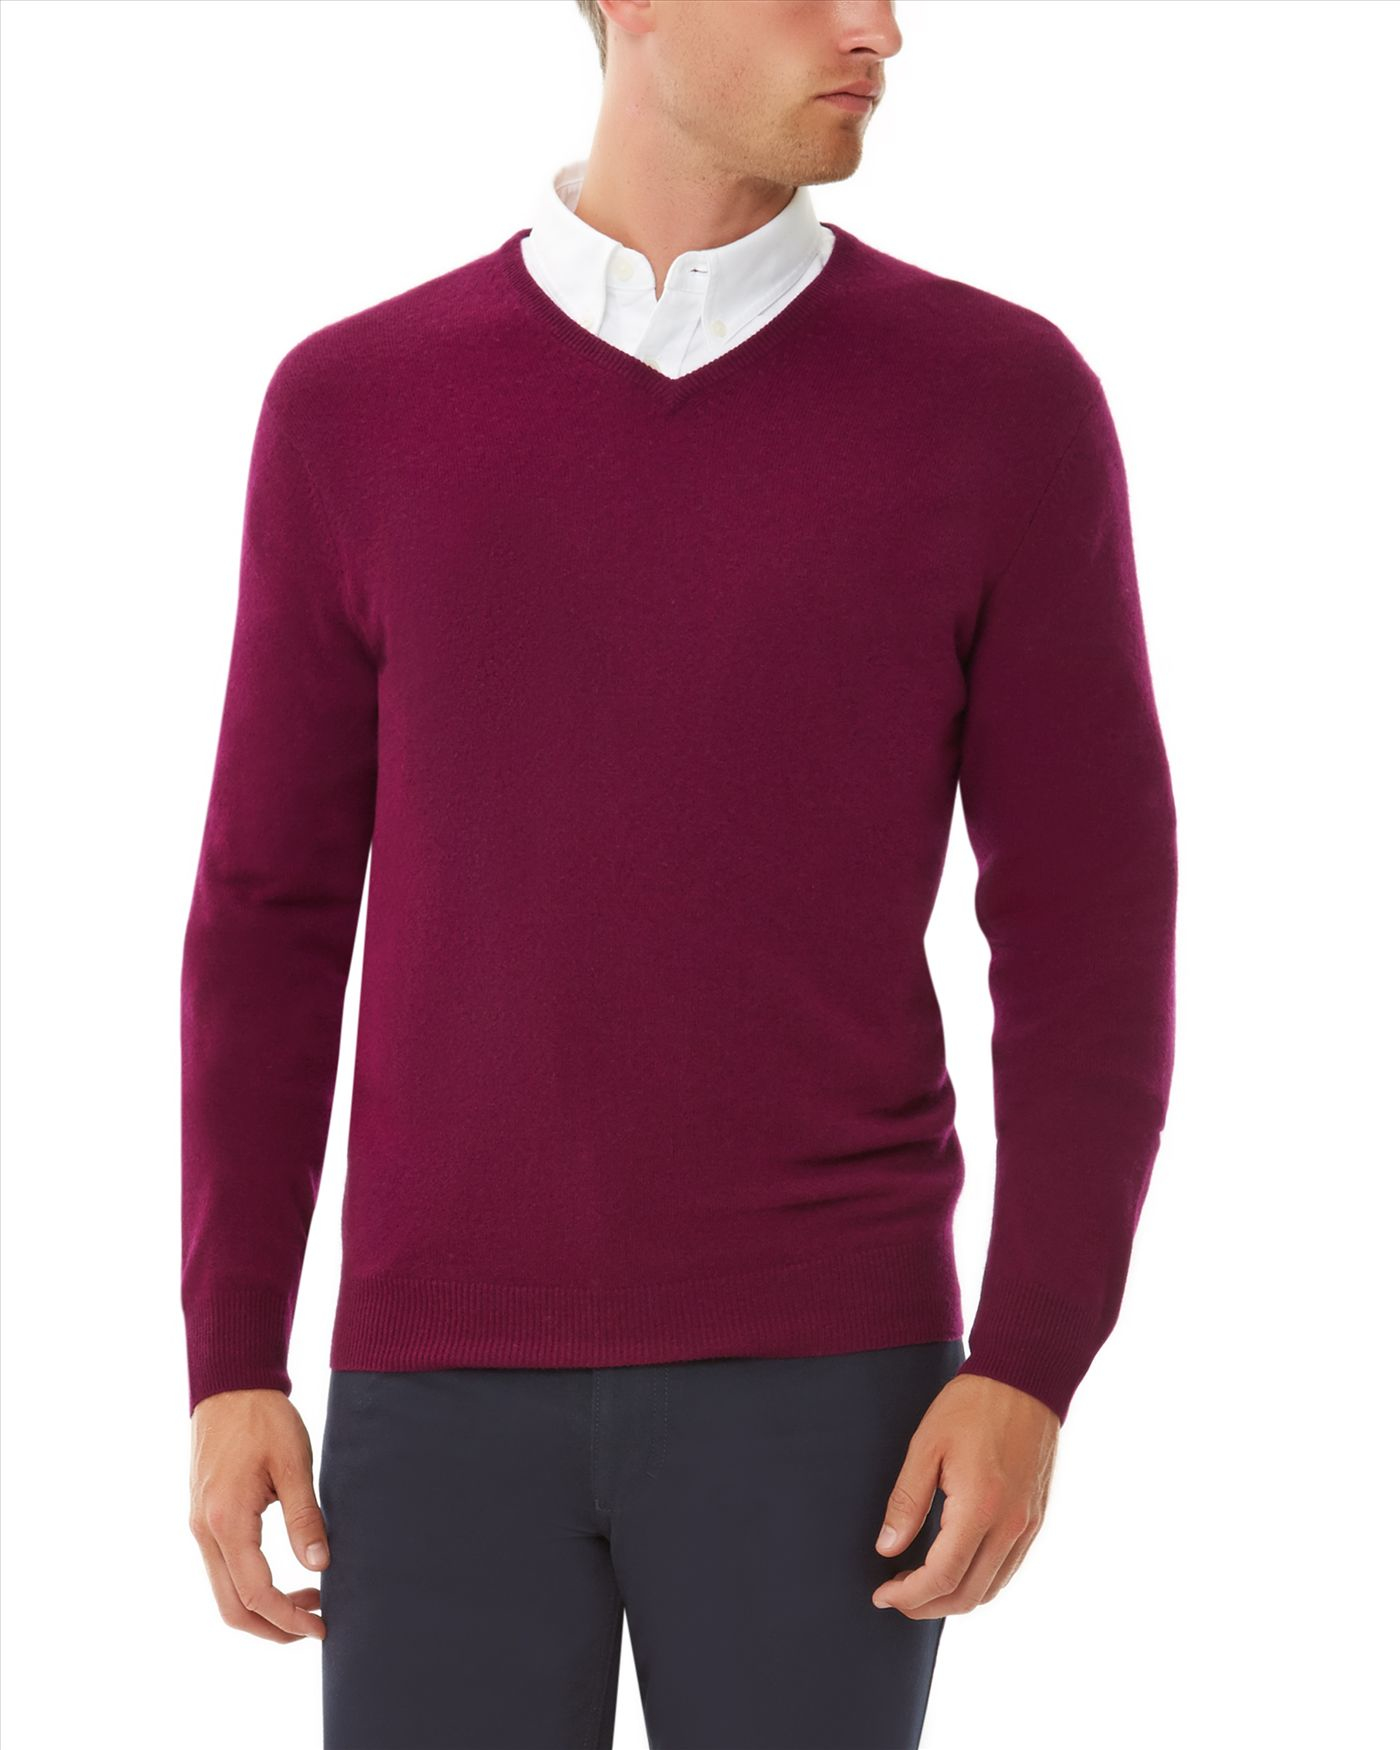 Jaeger Cashmere V-neck Sweater in Plum (Purple) for Men